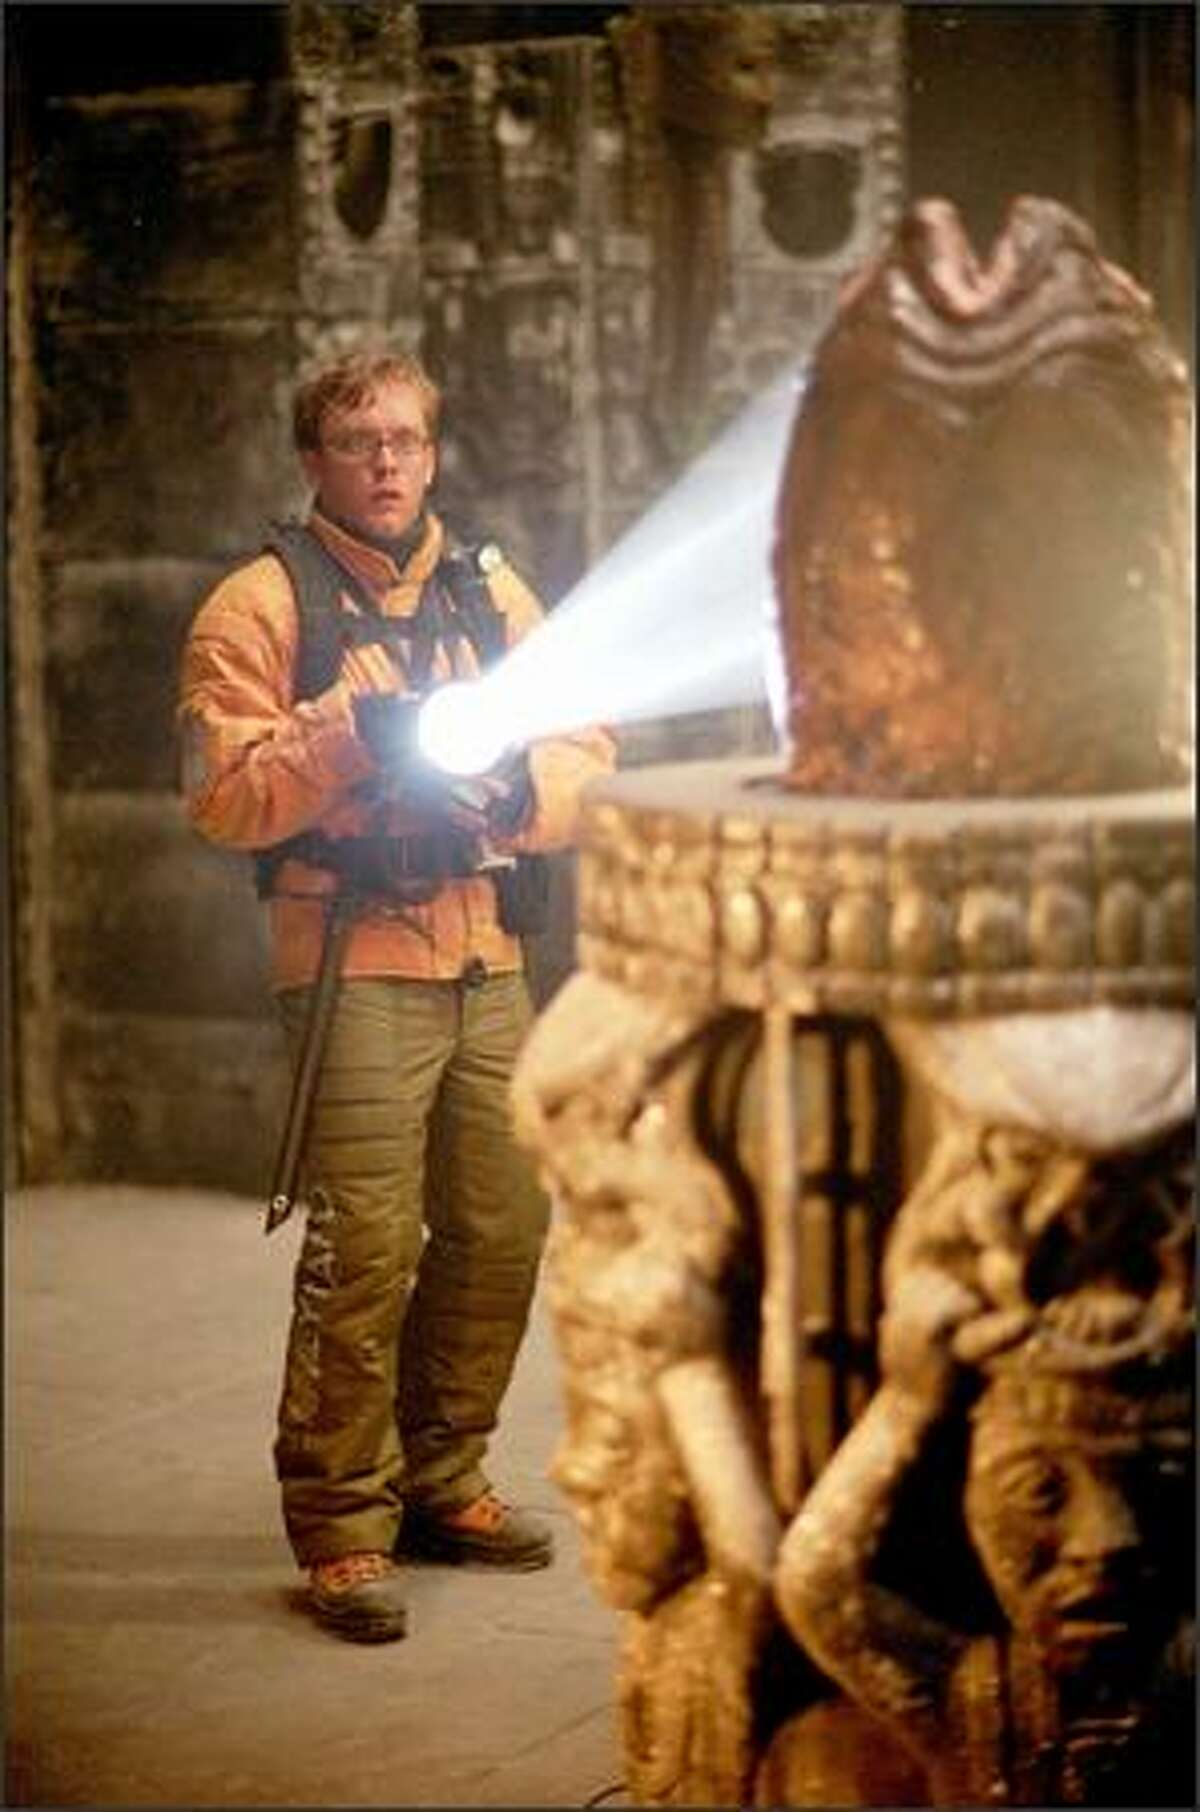 In the aptly-named Sacrificial Chamber, Thomas (Sam Troughton) discovers an Alien egg. For centuries, the Predators have bred Aliens on Earth using a captive Alien Queen to test their warriors in a brutal rite of passage.